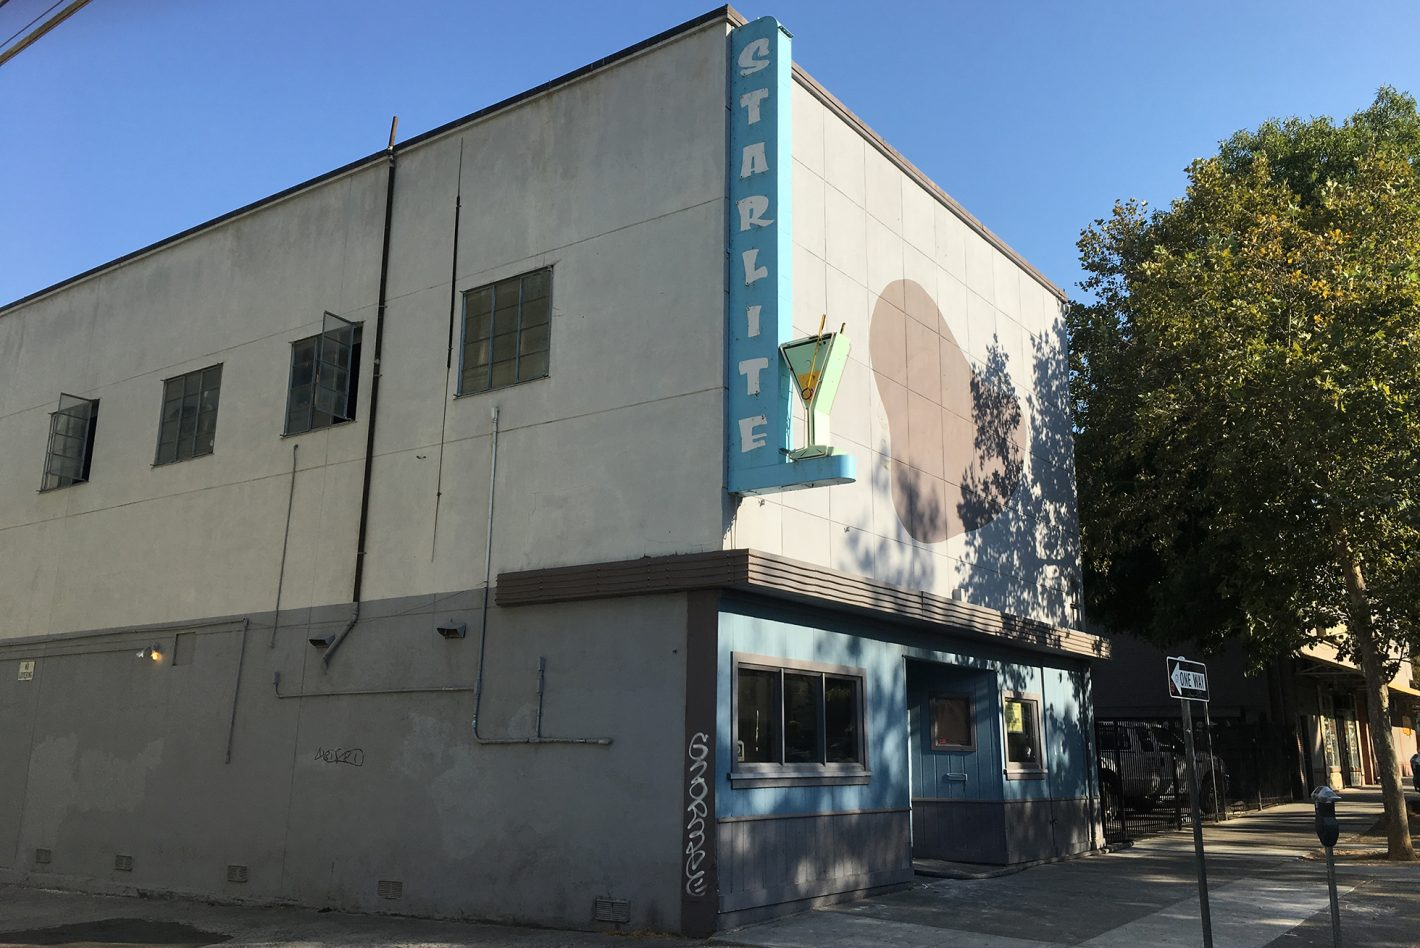 Holy Diver to take over Starlite